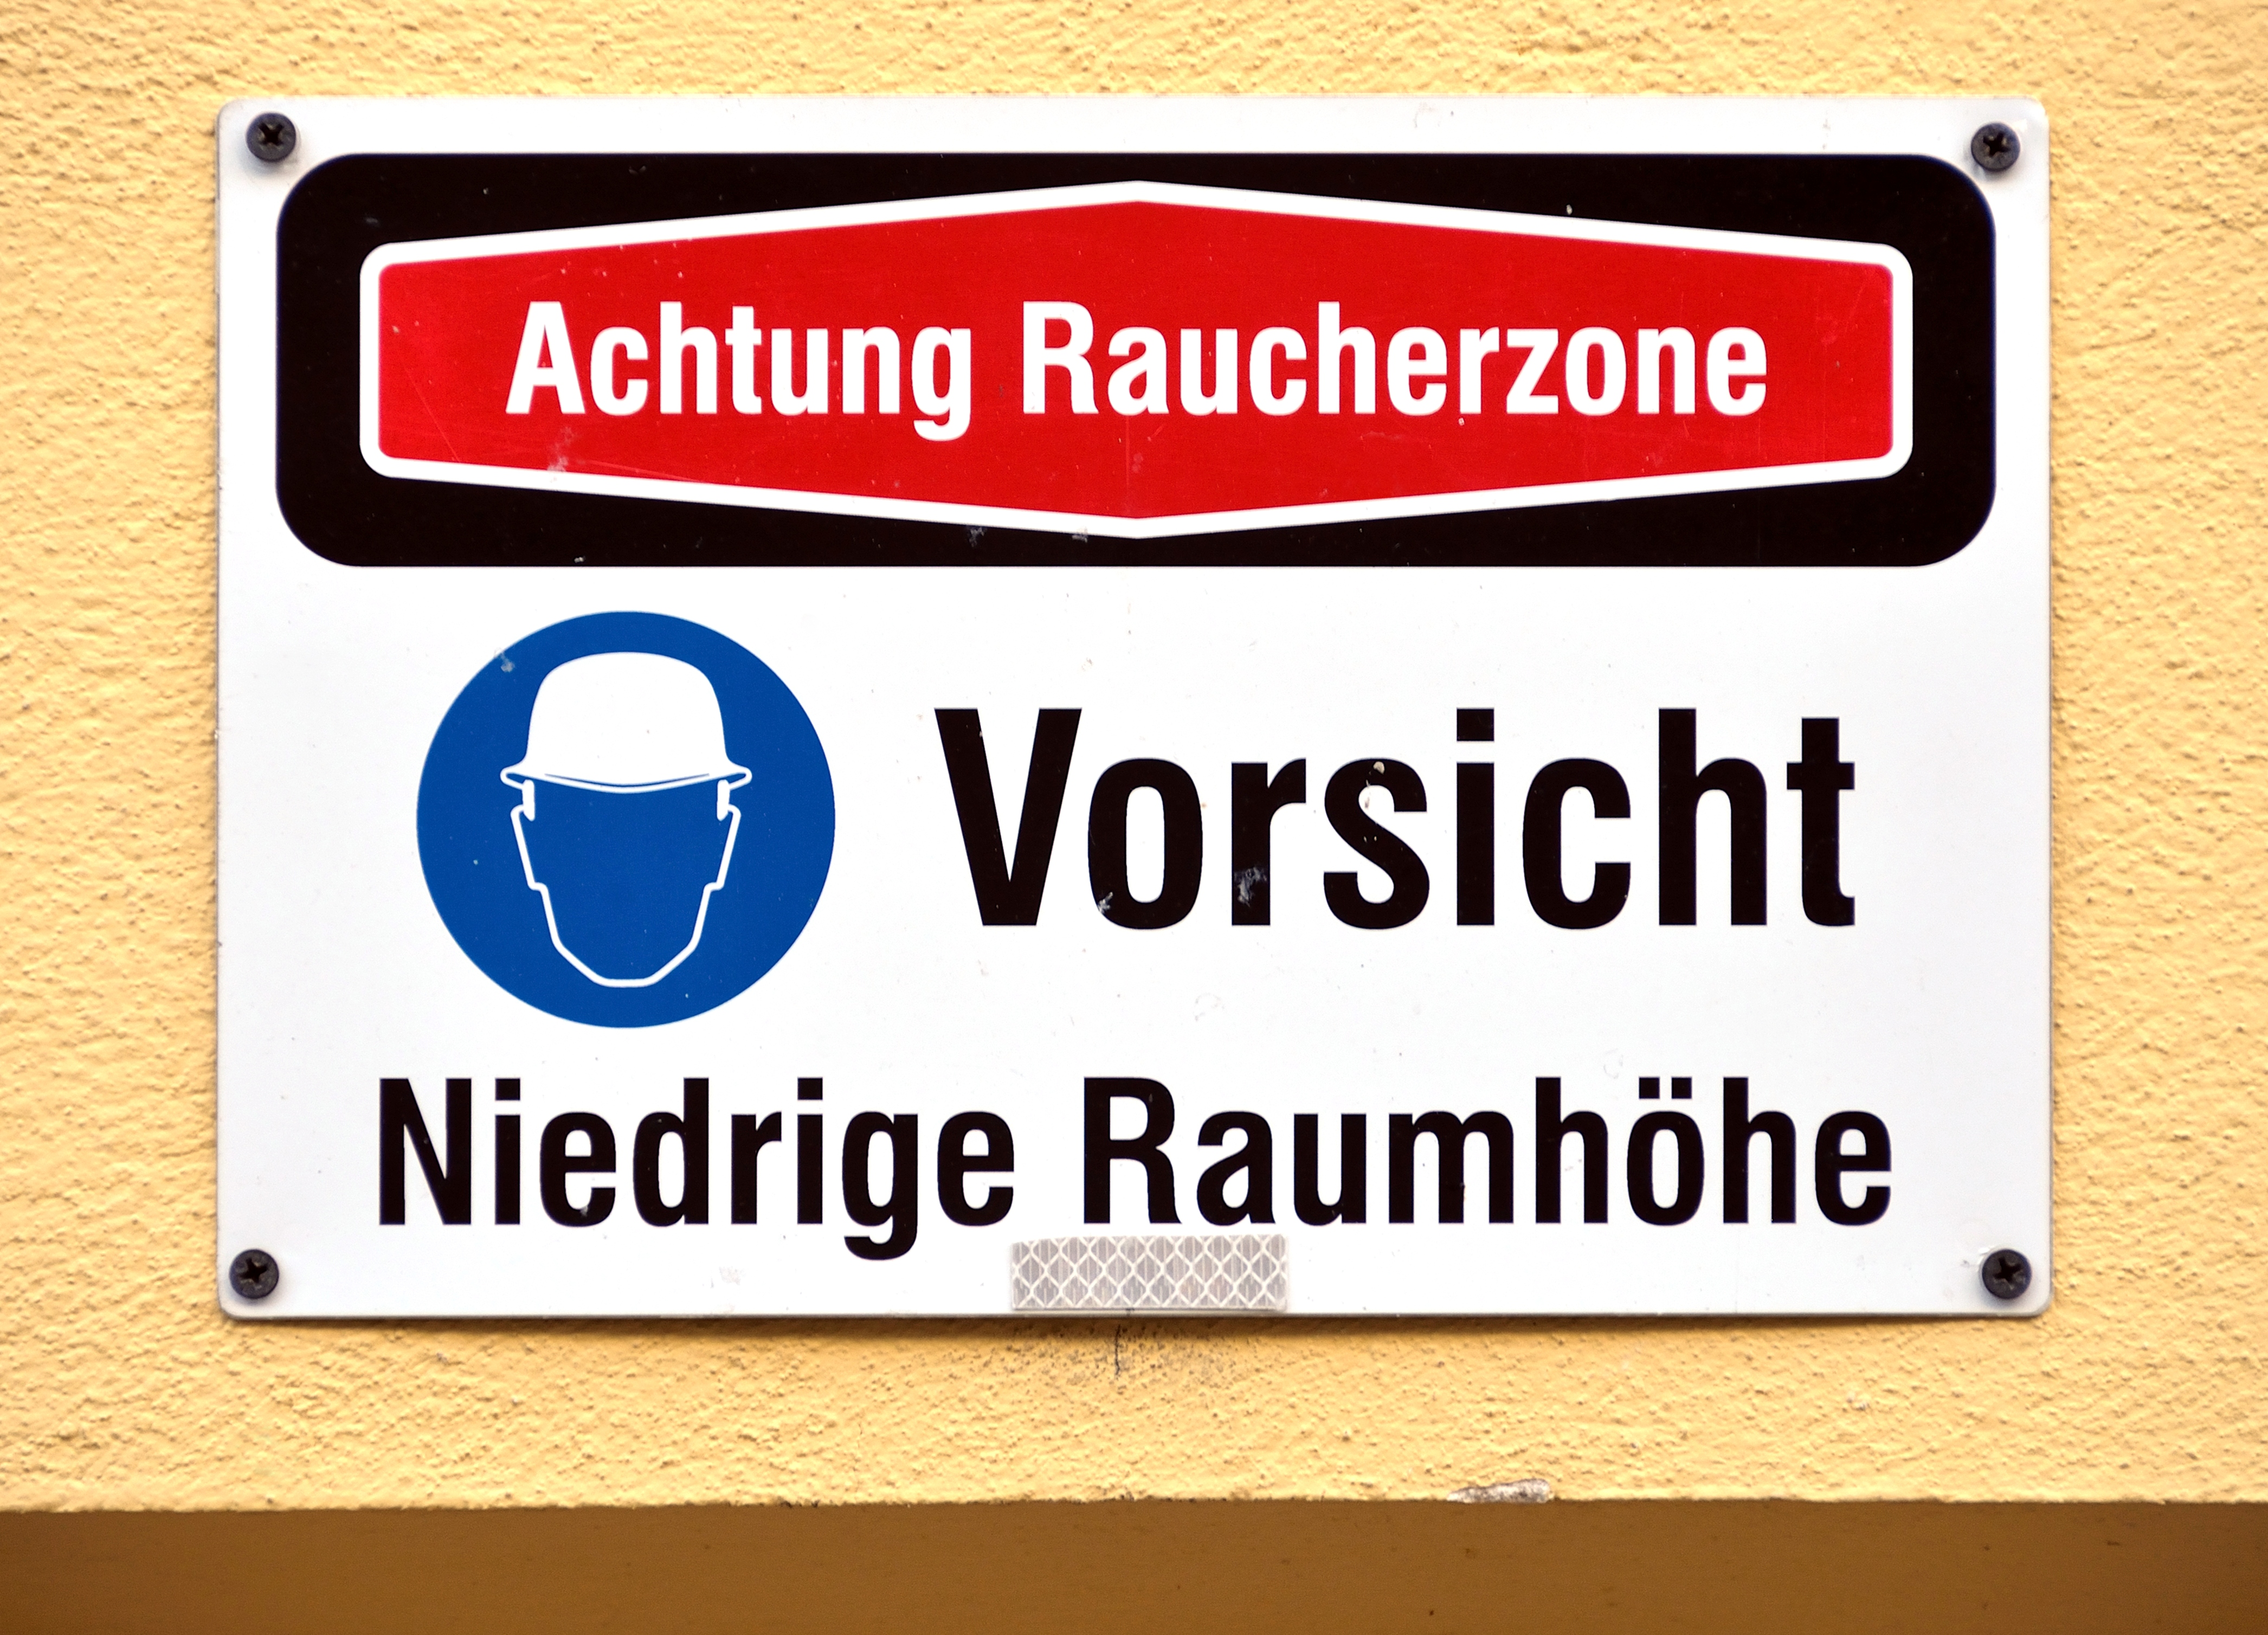 Tremendous Raucherzone Best Choice Of Bined Dangers, Künstlergasse 7, Vienna.jpg